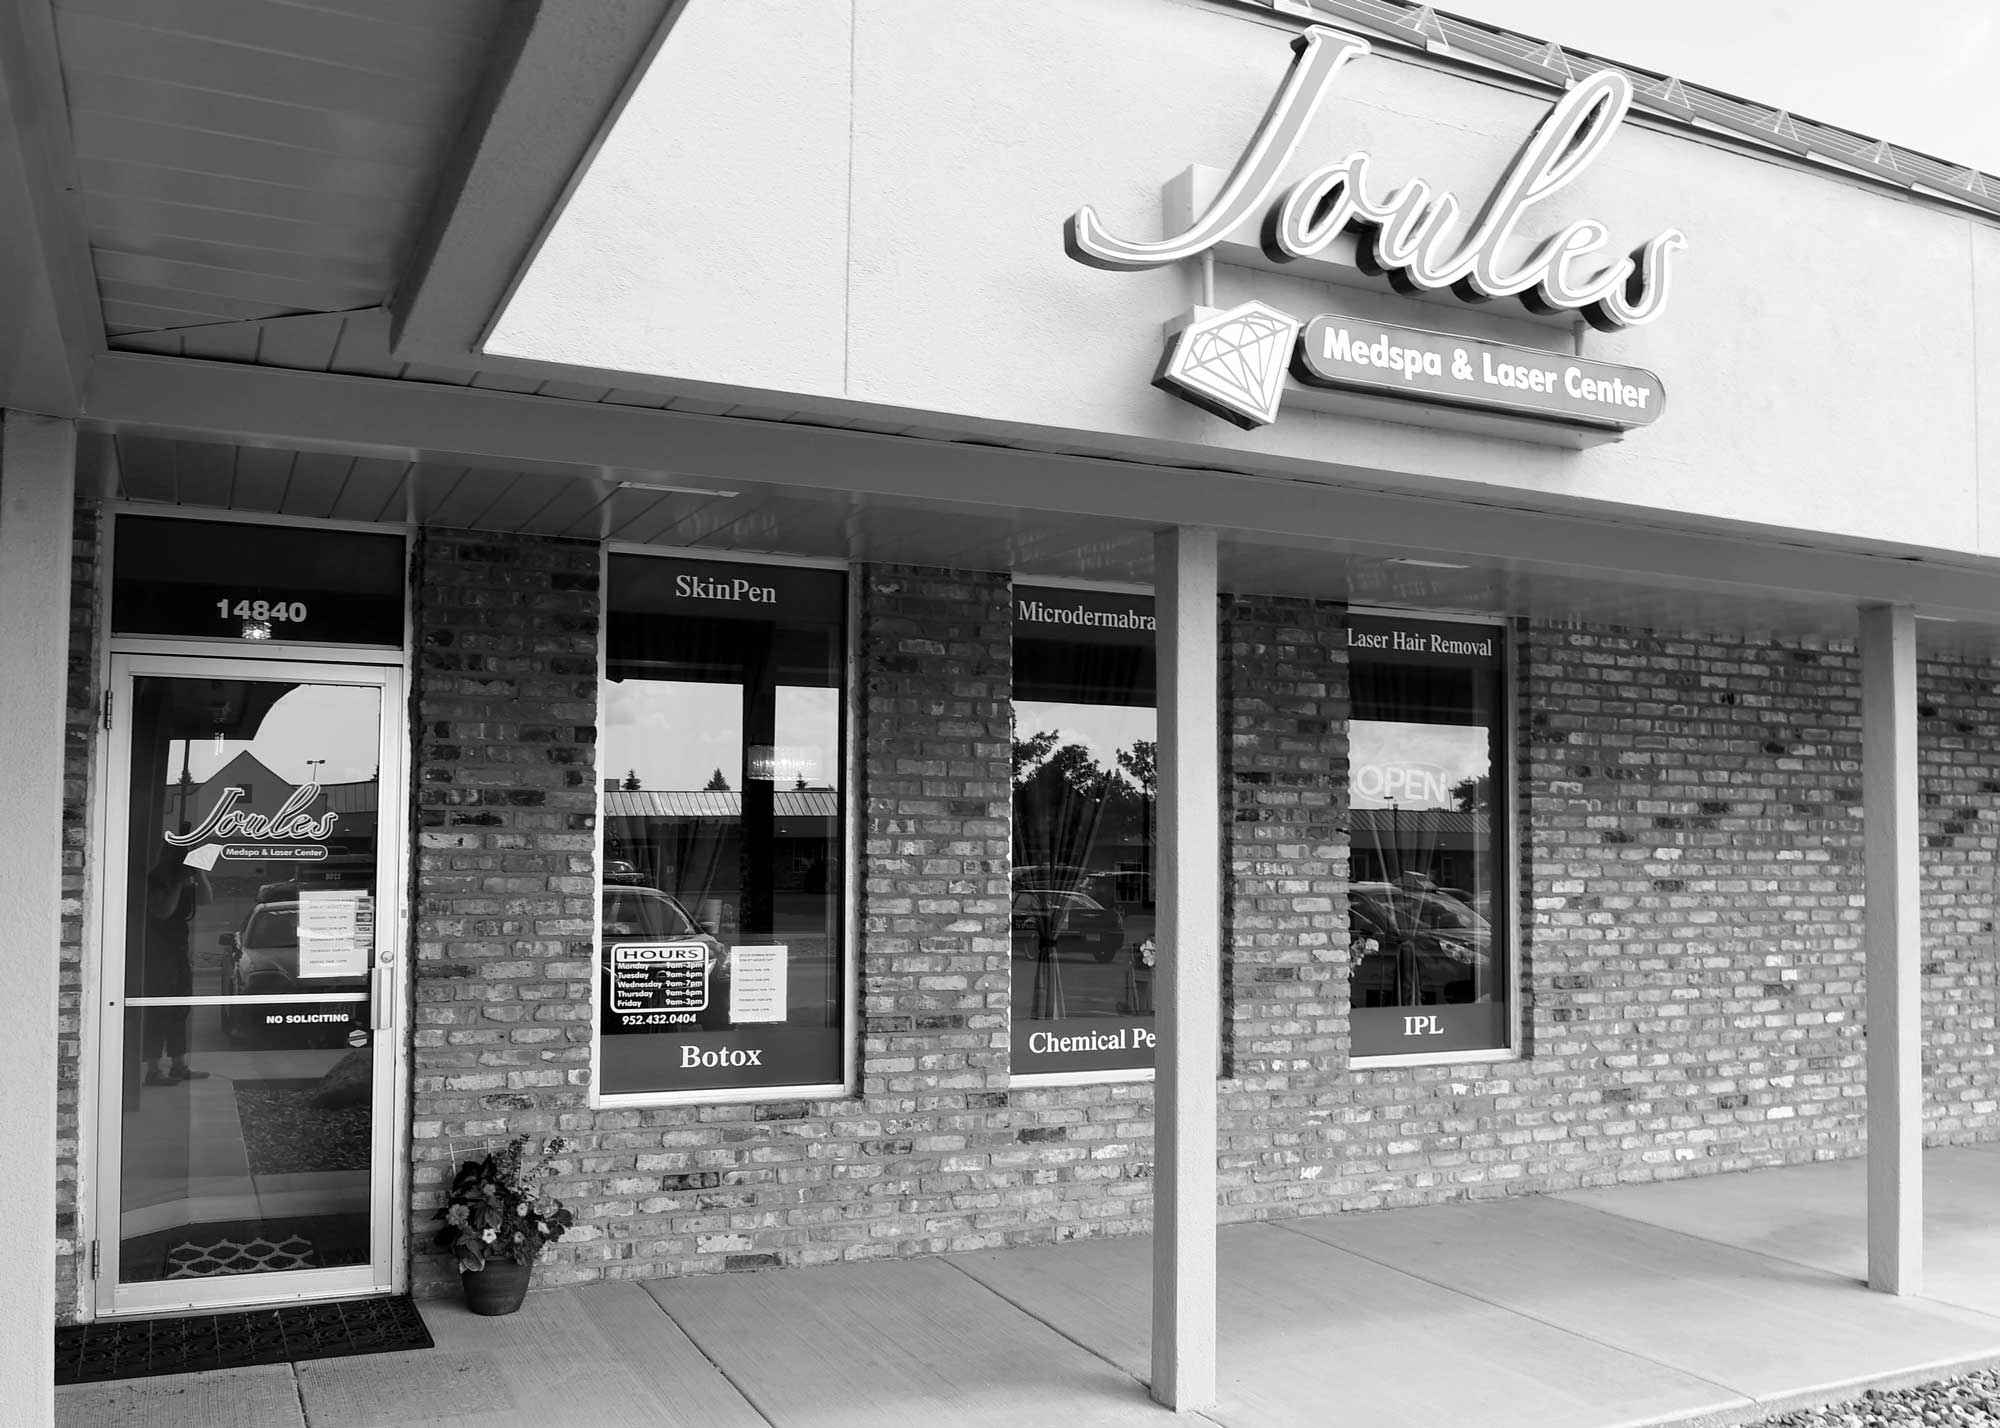 Joules Medspa outside view